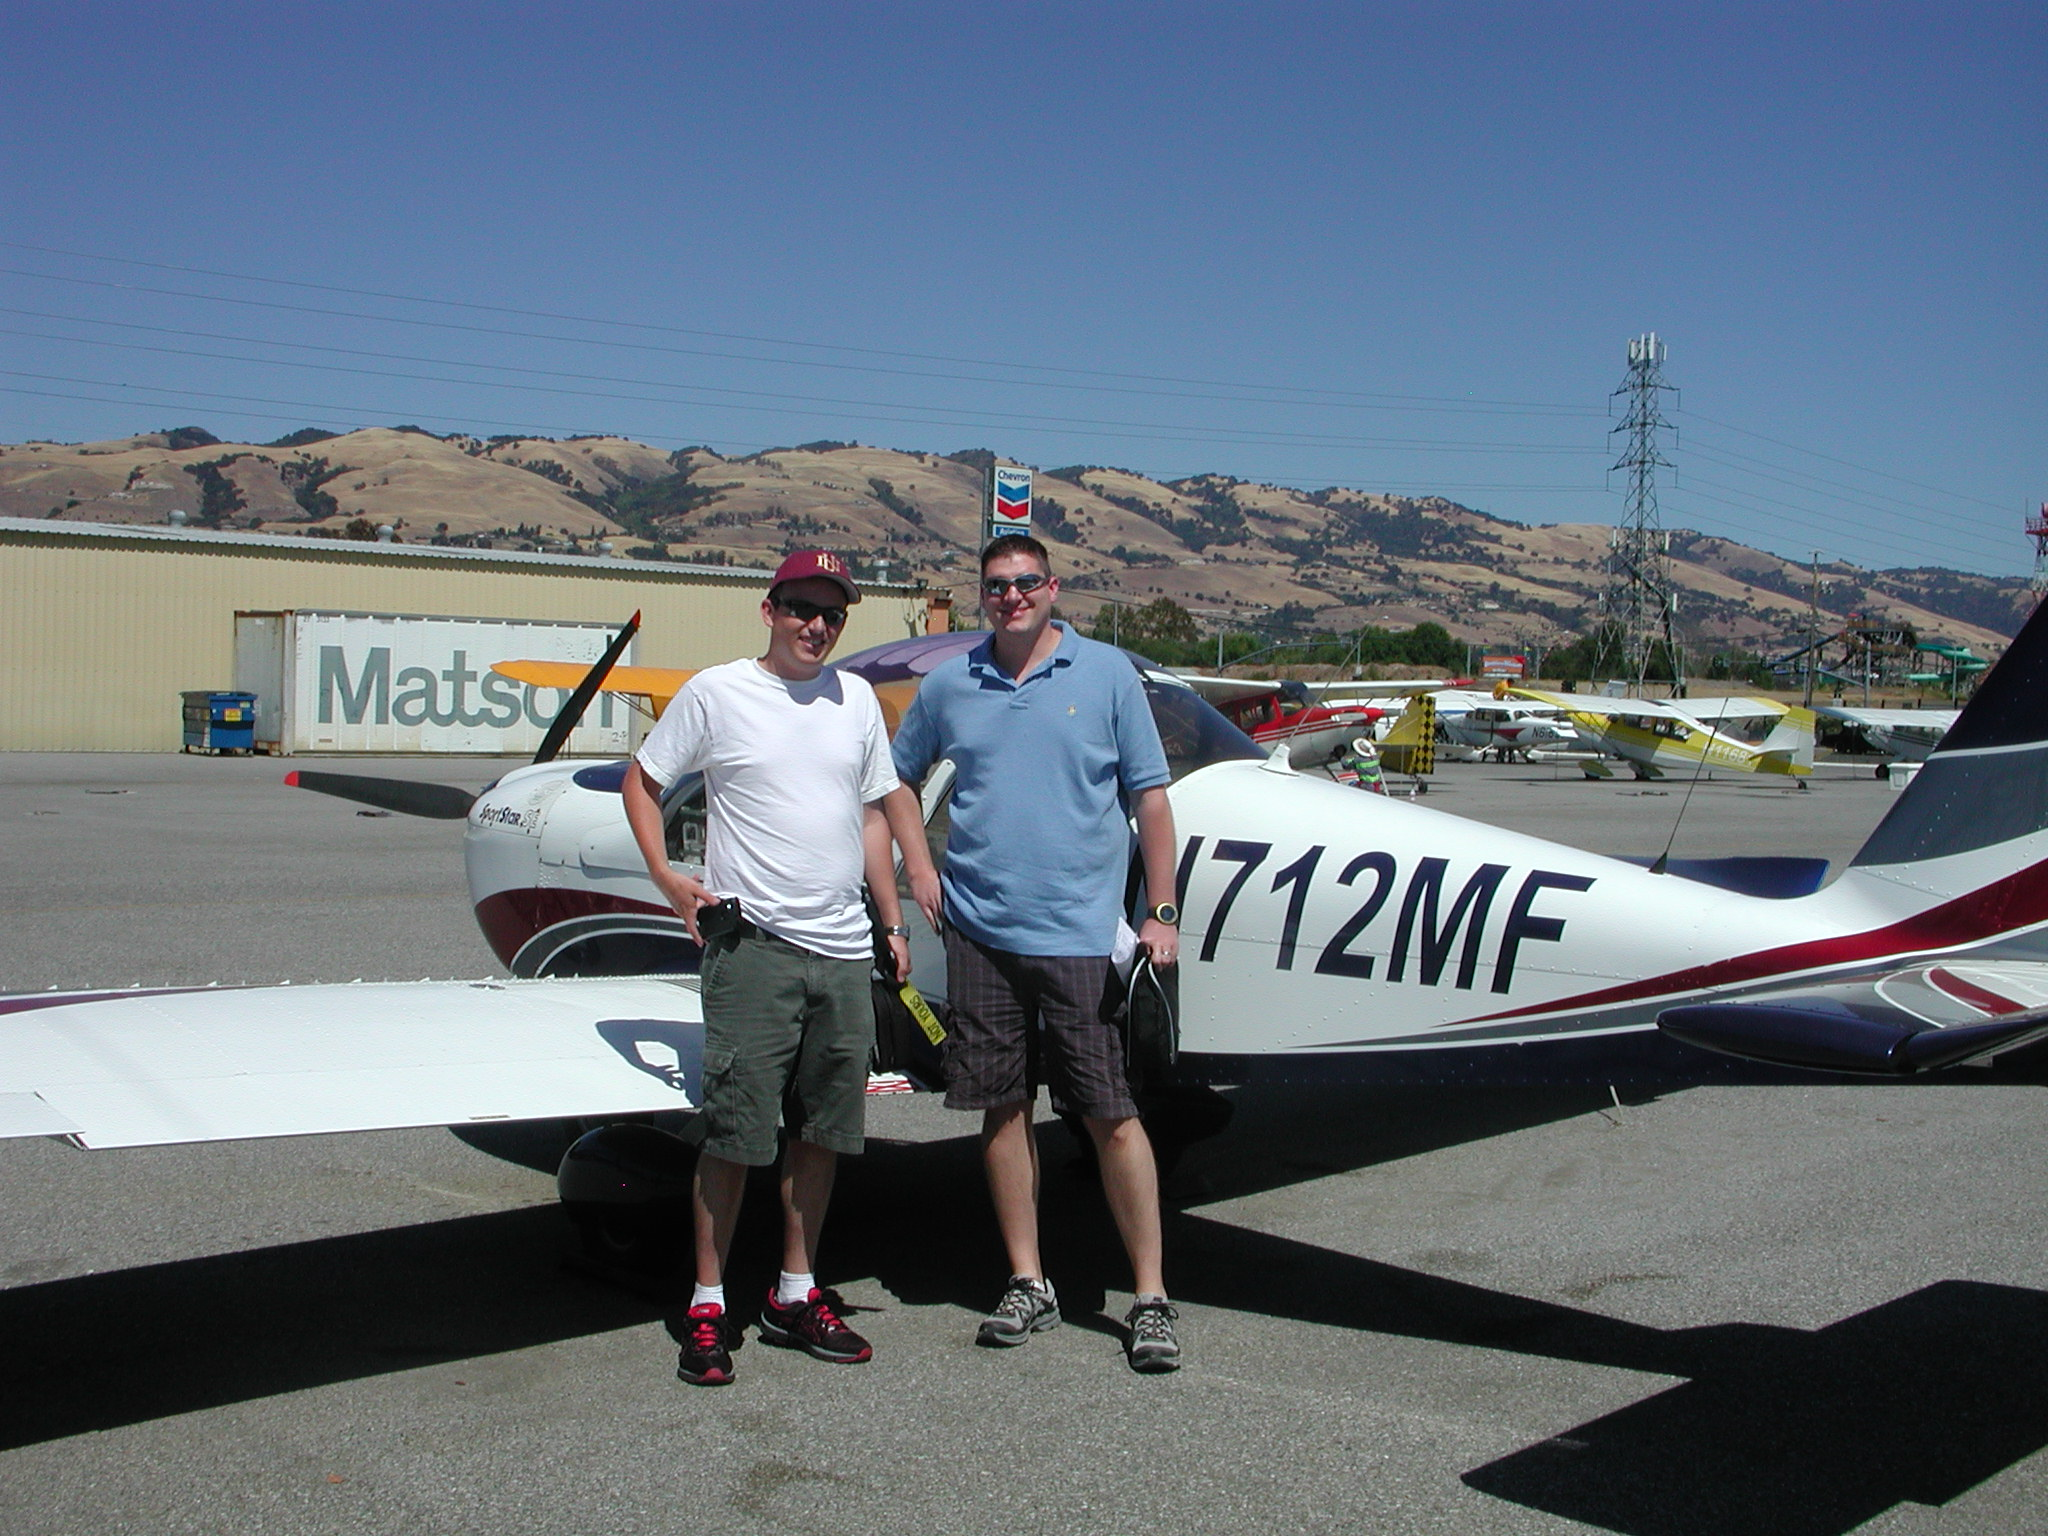 Mike Krueger takes introductory lesson at AeroDynamic Aviation at Reid Hillview Airport located in San Jose, CA.